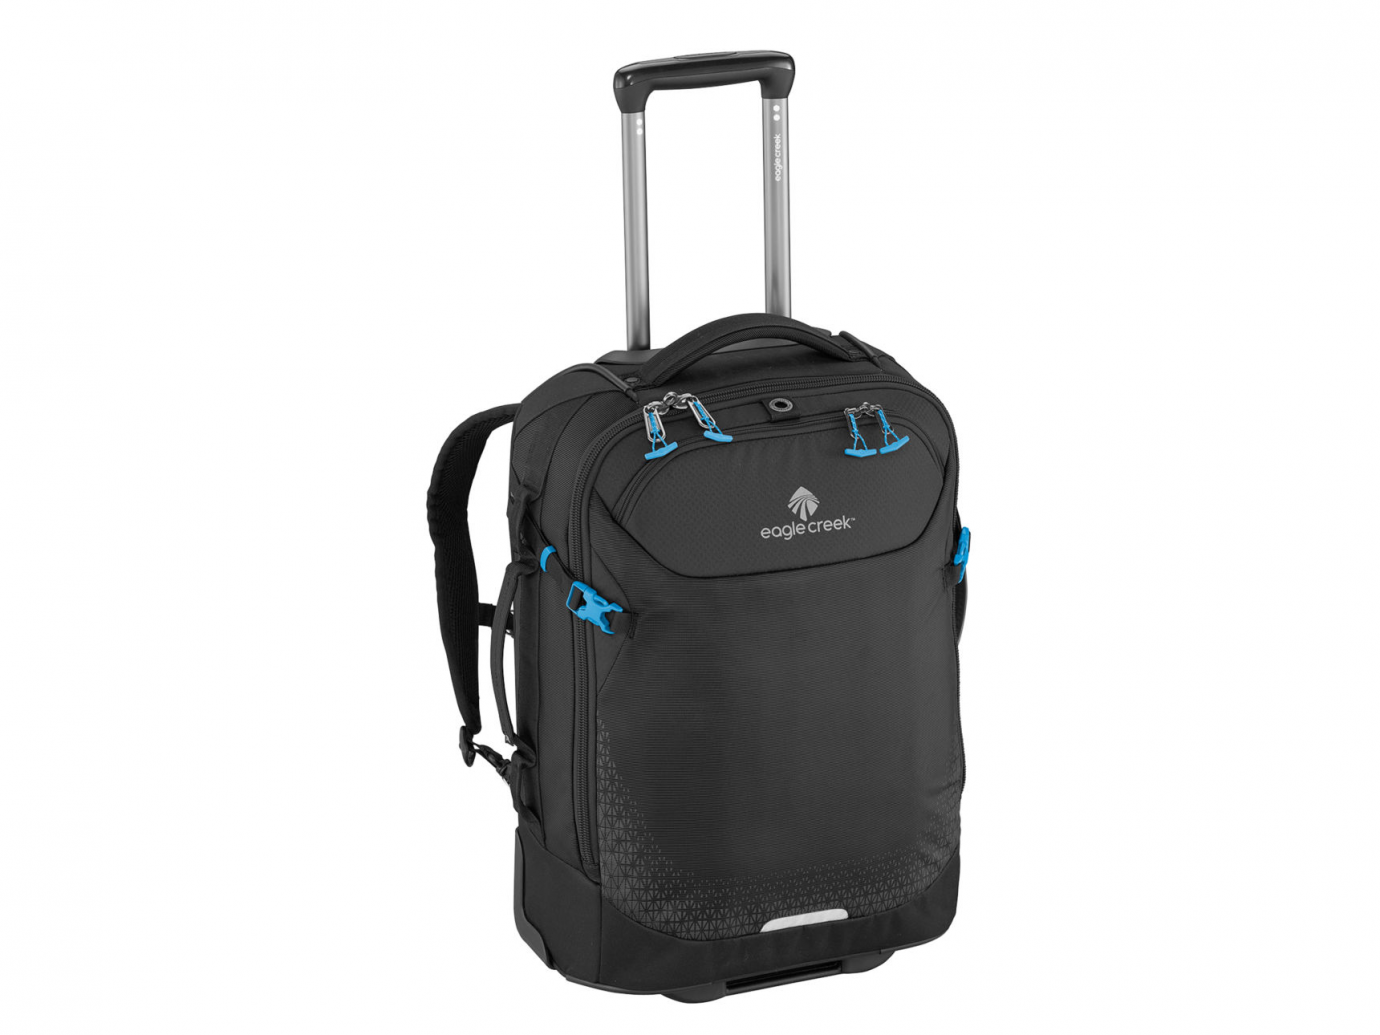 eagle creek EXPANSE™ CONVERTIBLE INTERNATIONAL CARRY-ON